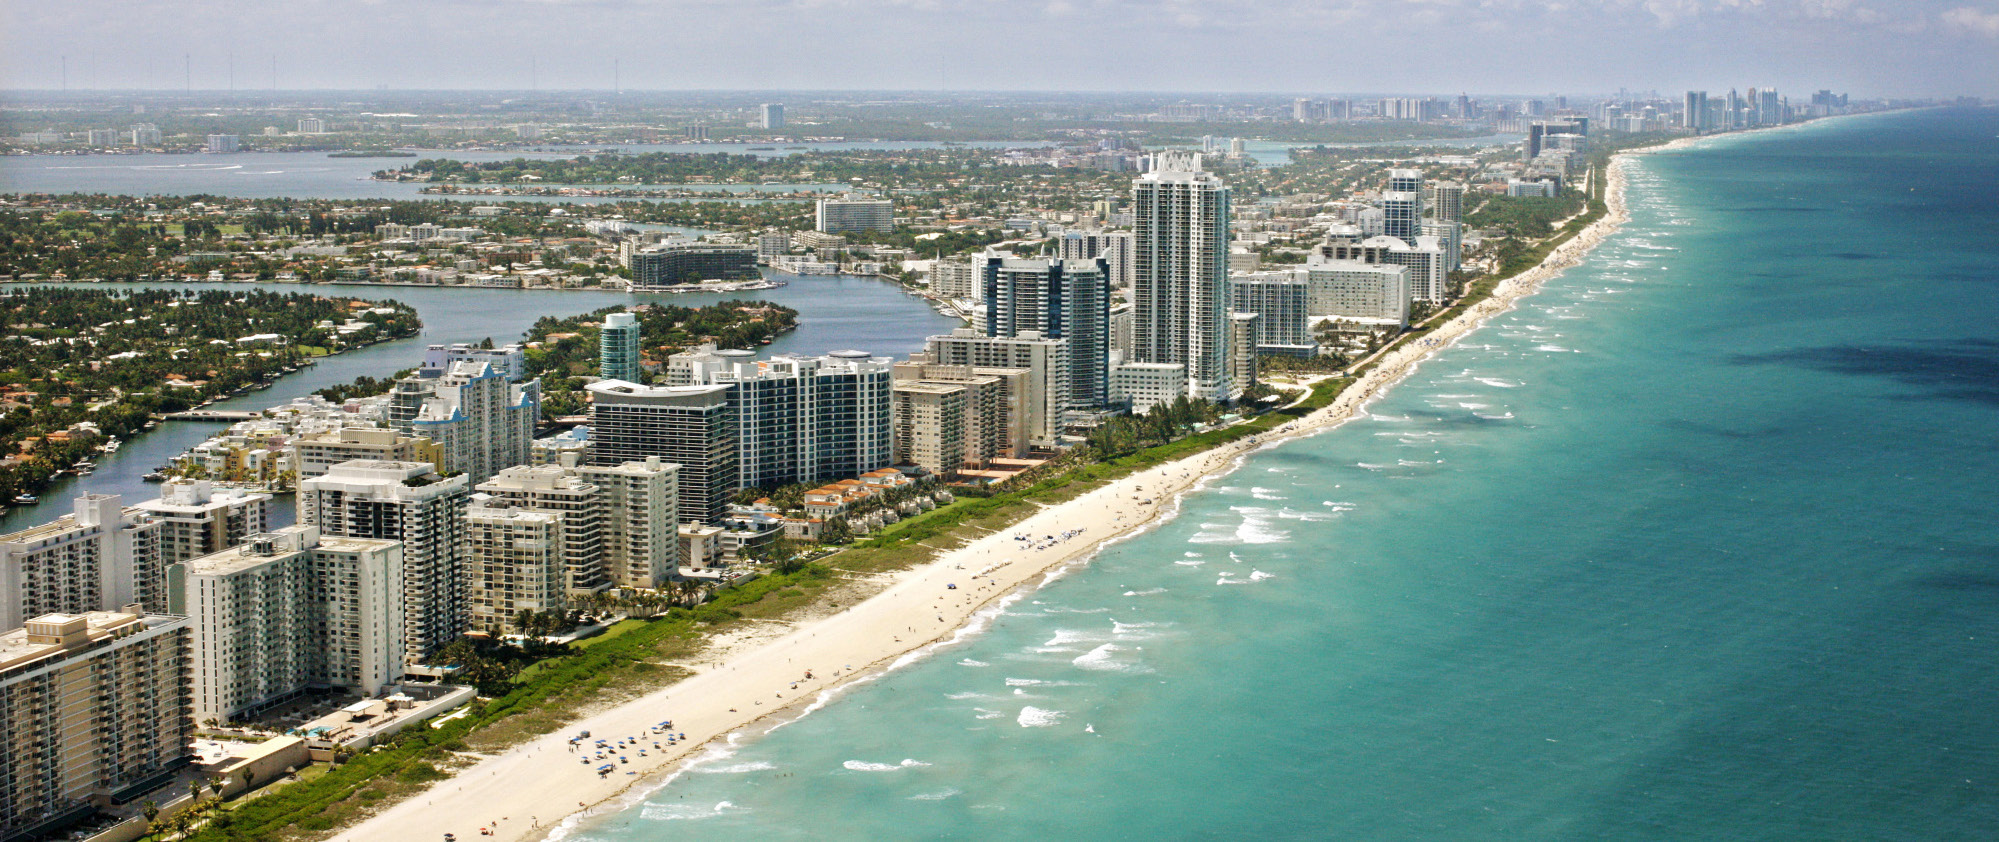 IMMERSING YOURSELF IN THE CULTURE OF ART BASEL MIAMI